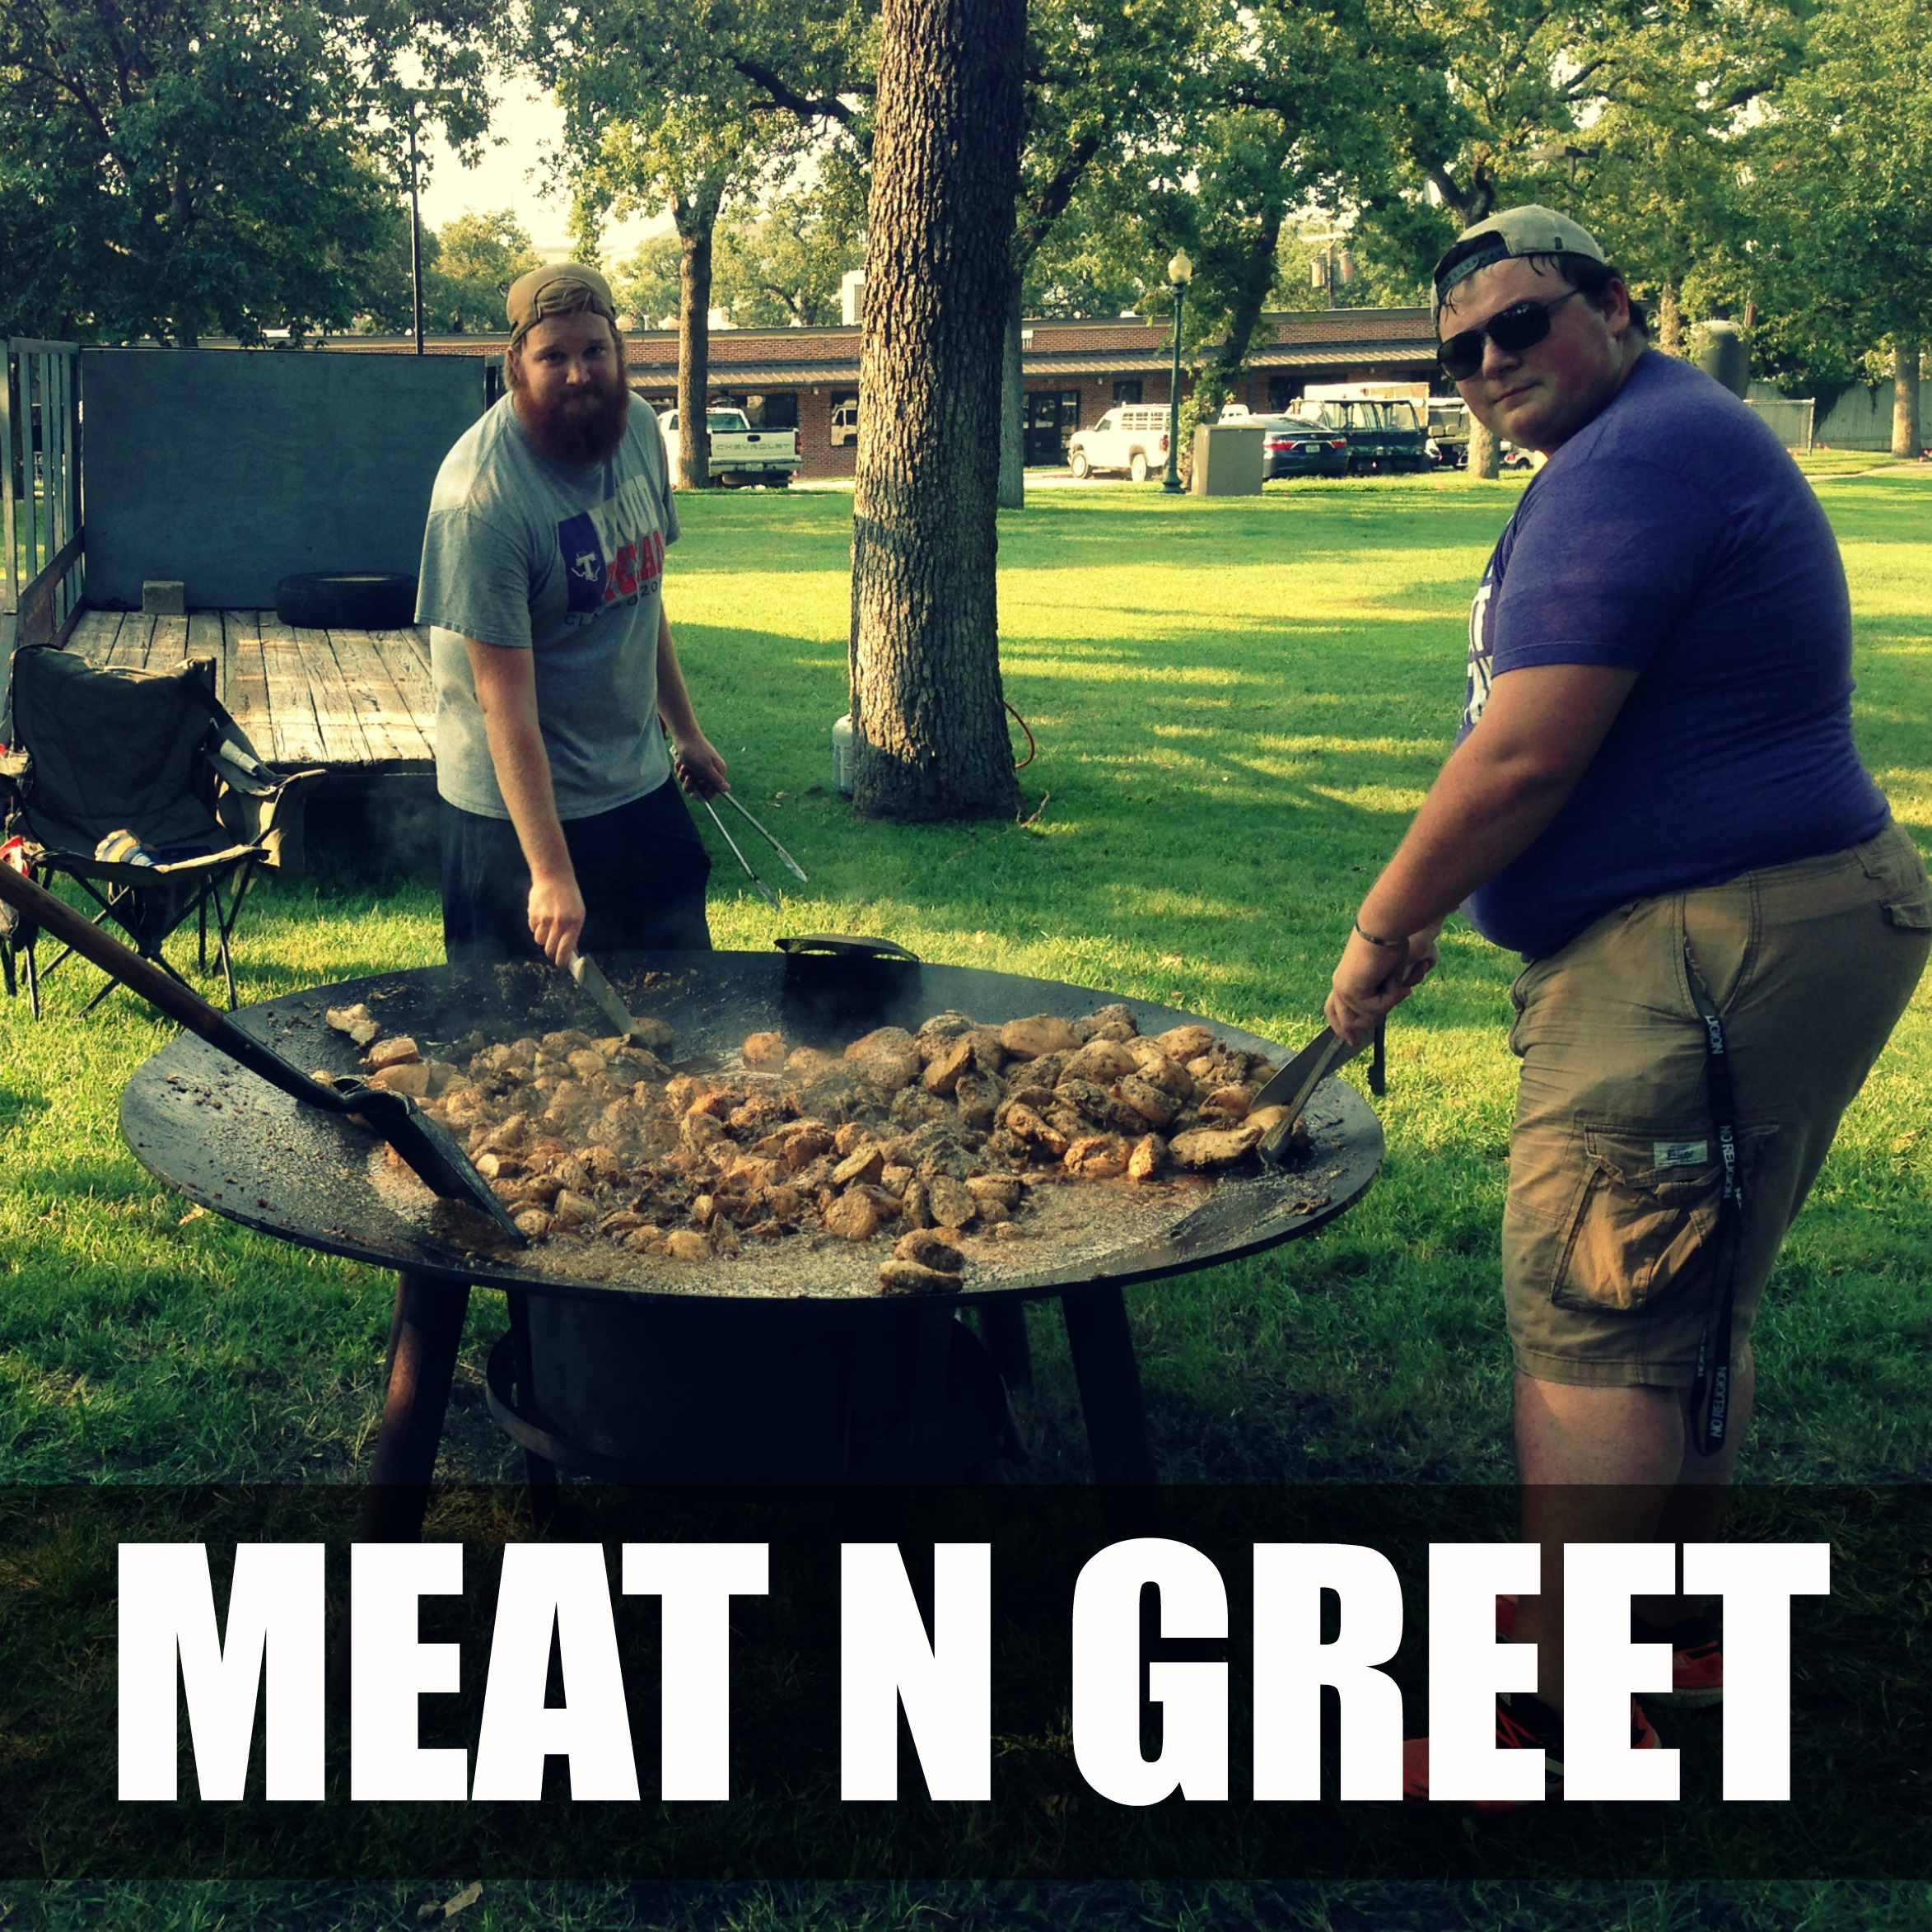 MEAT N GREET   THURSDAY AT 7PM IN HERITAGE PARK   100s of pounds of meat! Come join us for a meat buffet as we celebrate the kick off of 402! Eat well, hang out, play giant yard games, and relax. Be sure to join us for the 402 Worship Encounter at 8pm at the BSM immediately following Meat N Greet!